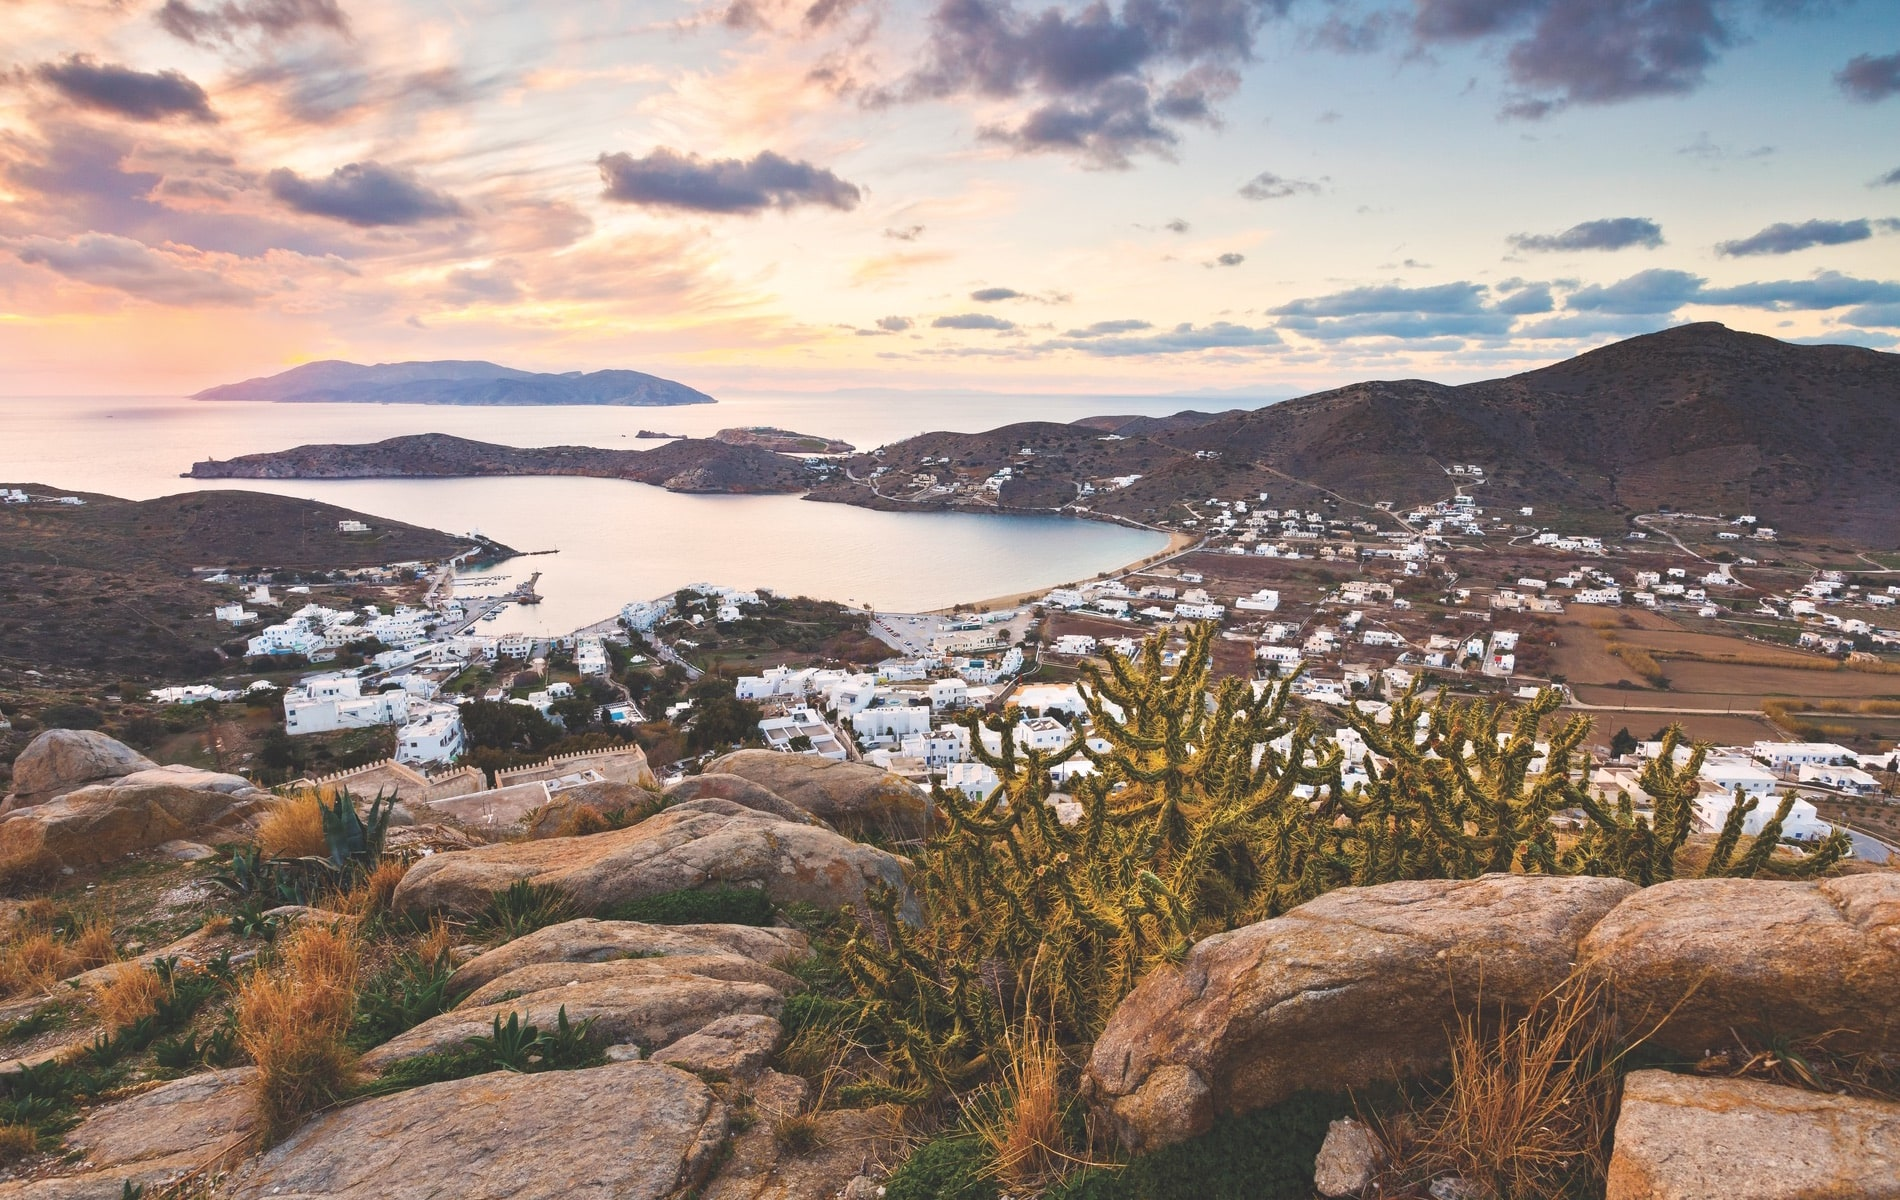 The small Greek island of Ios is home to not only scenic, off-the-beaten-track travel destinations but also a family's effort to save the country's ancient olive trees.